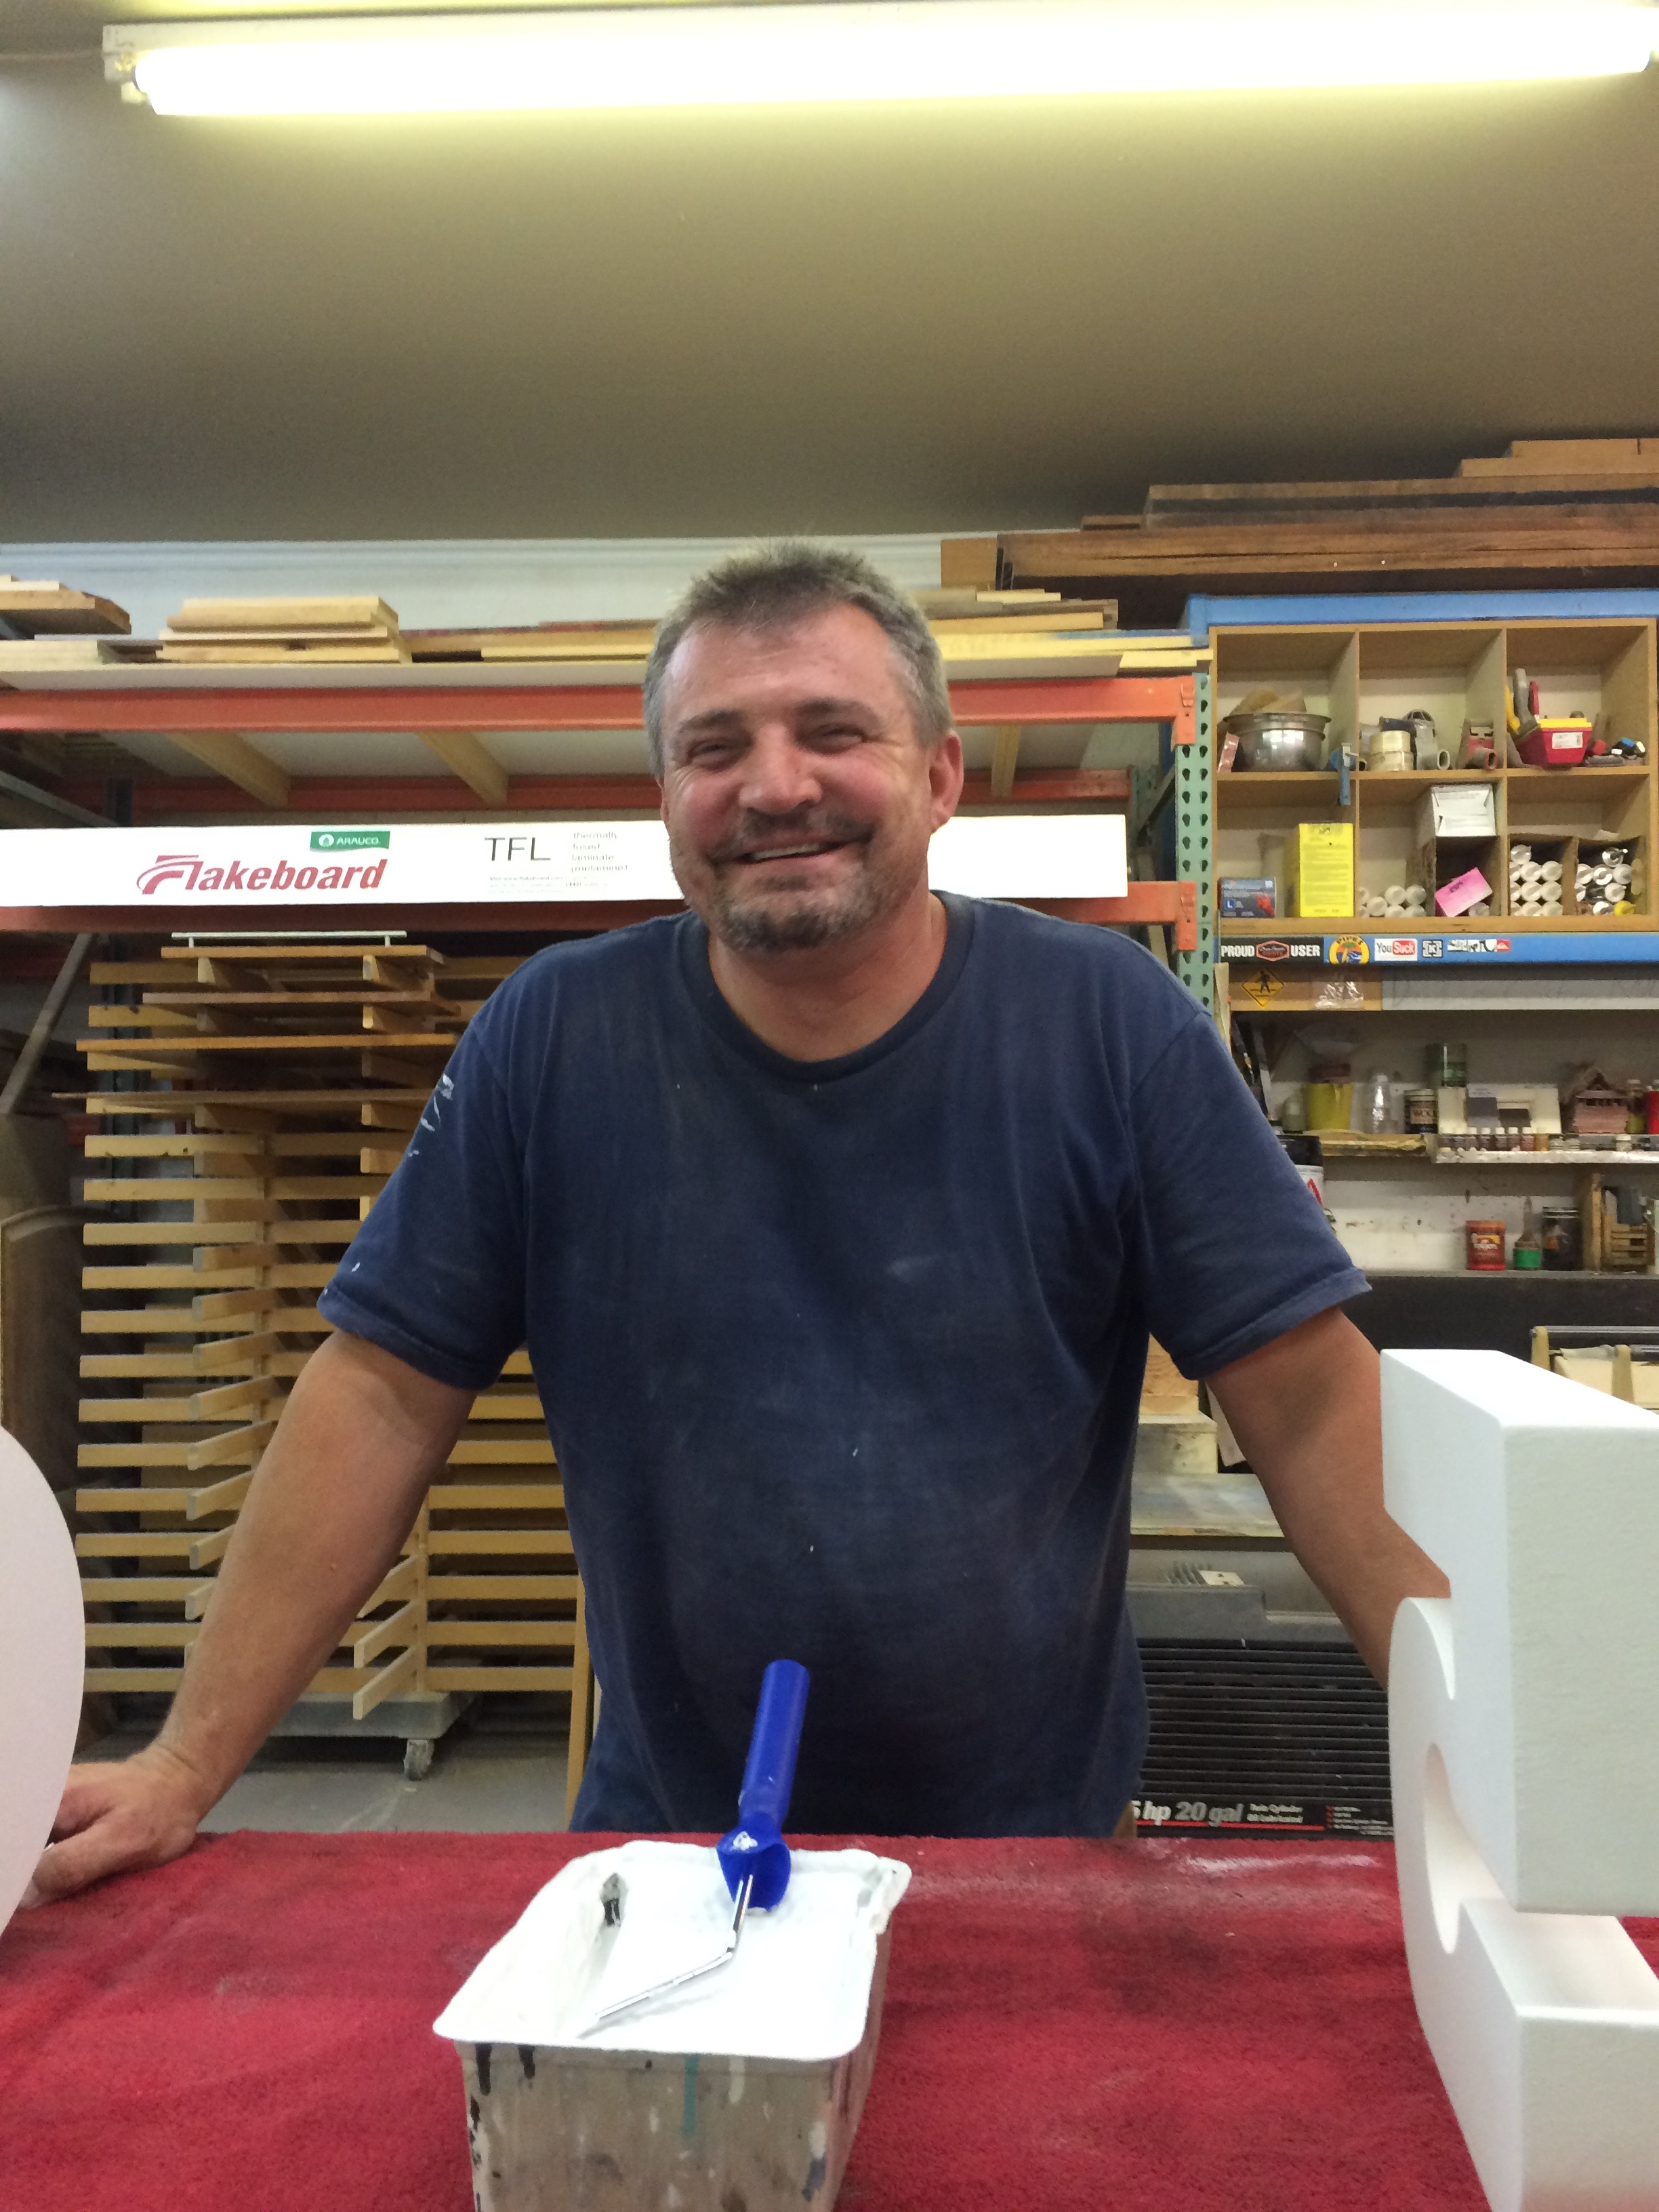 Dave in shop, David Perrin, David in DCM shop, DCM, Dave's custom Millwork, dcmperrin